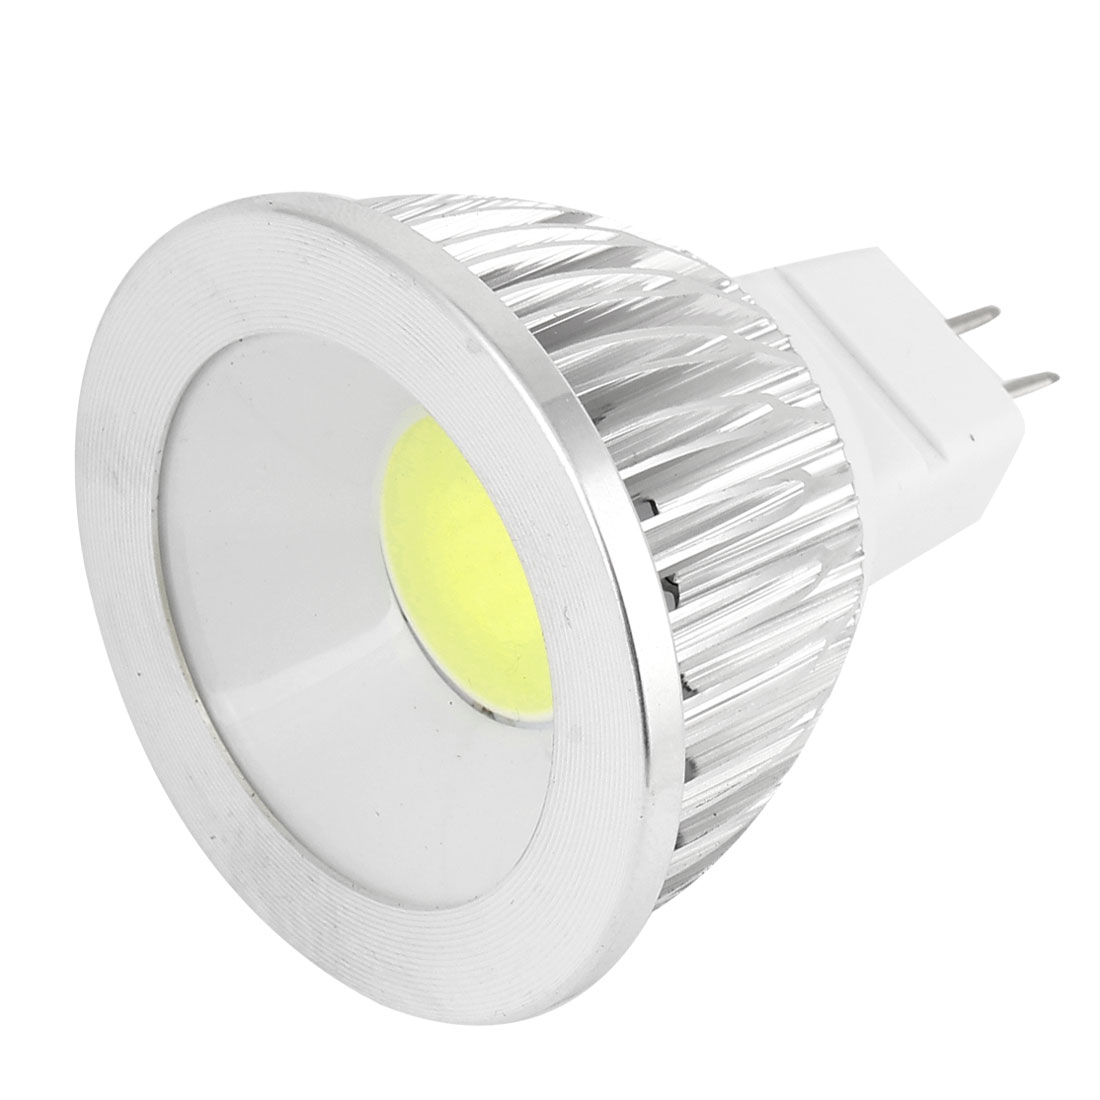 AC 12V 6W MR16 Dimmable Cool White Light COB LED Downlight Spotlight Lamp